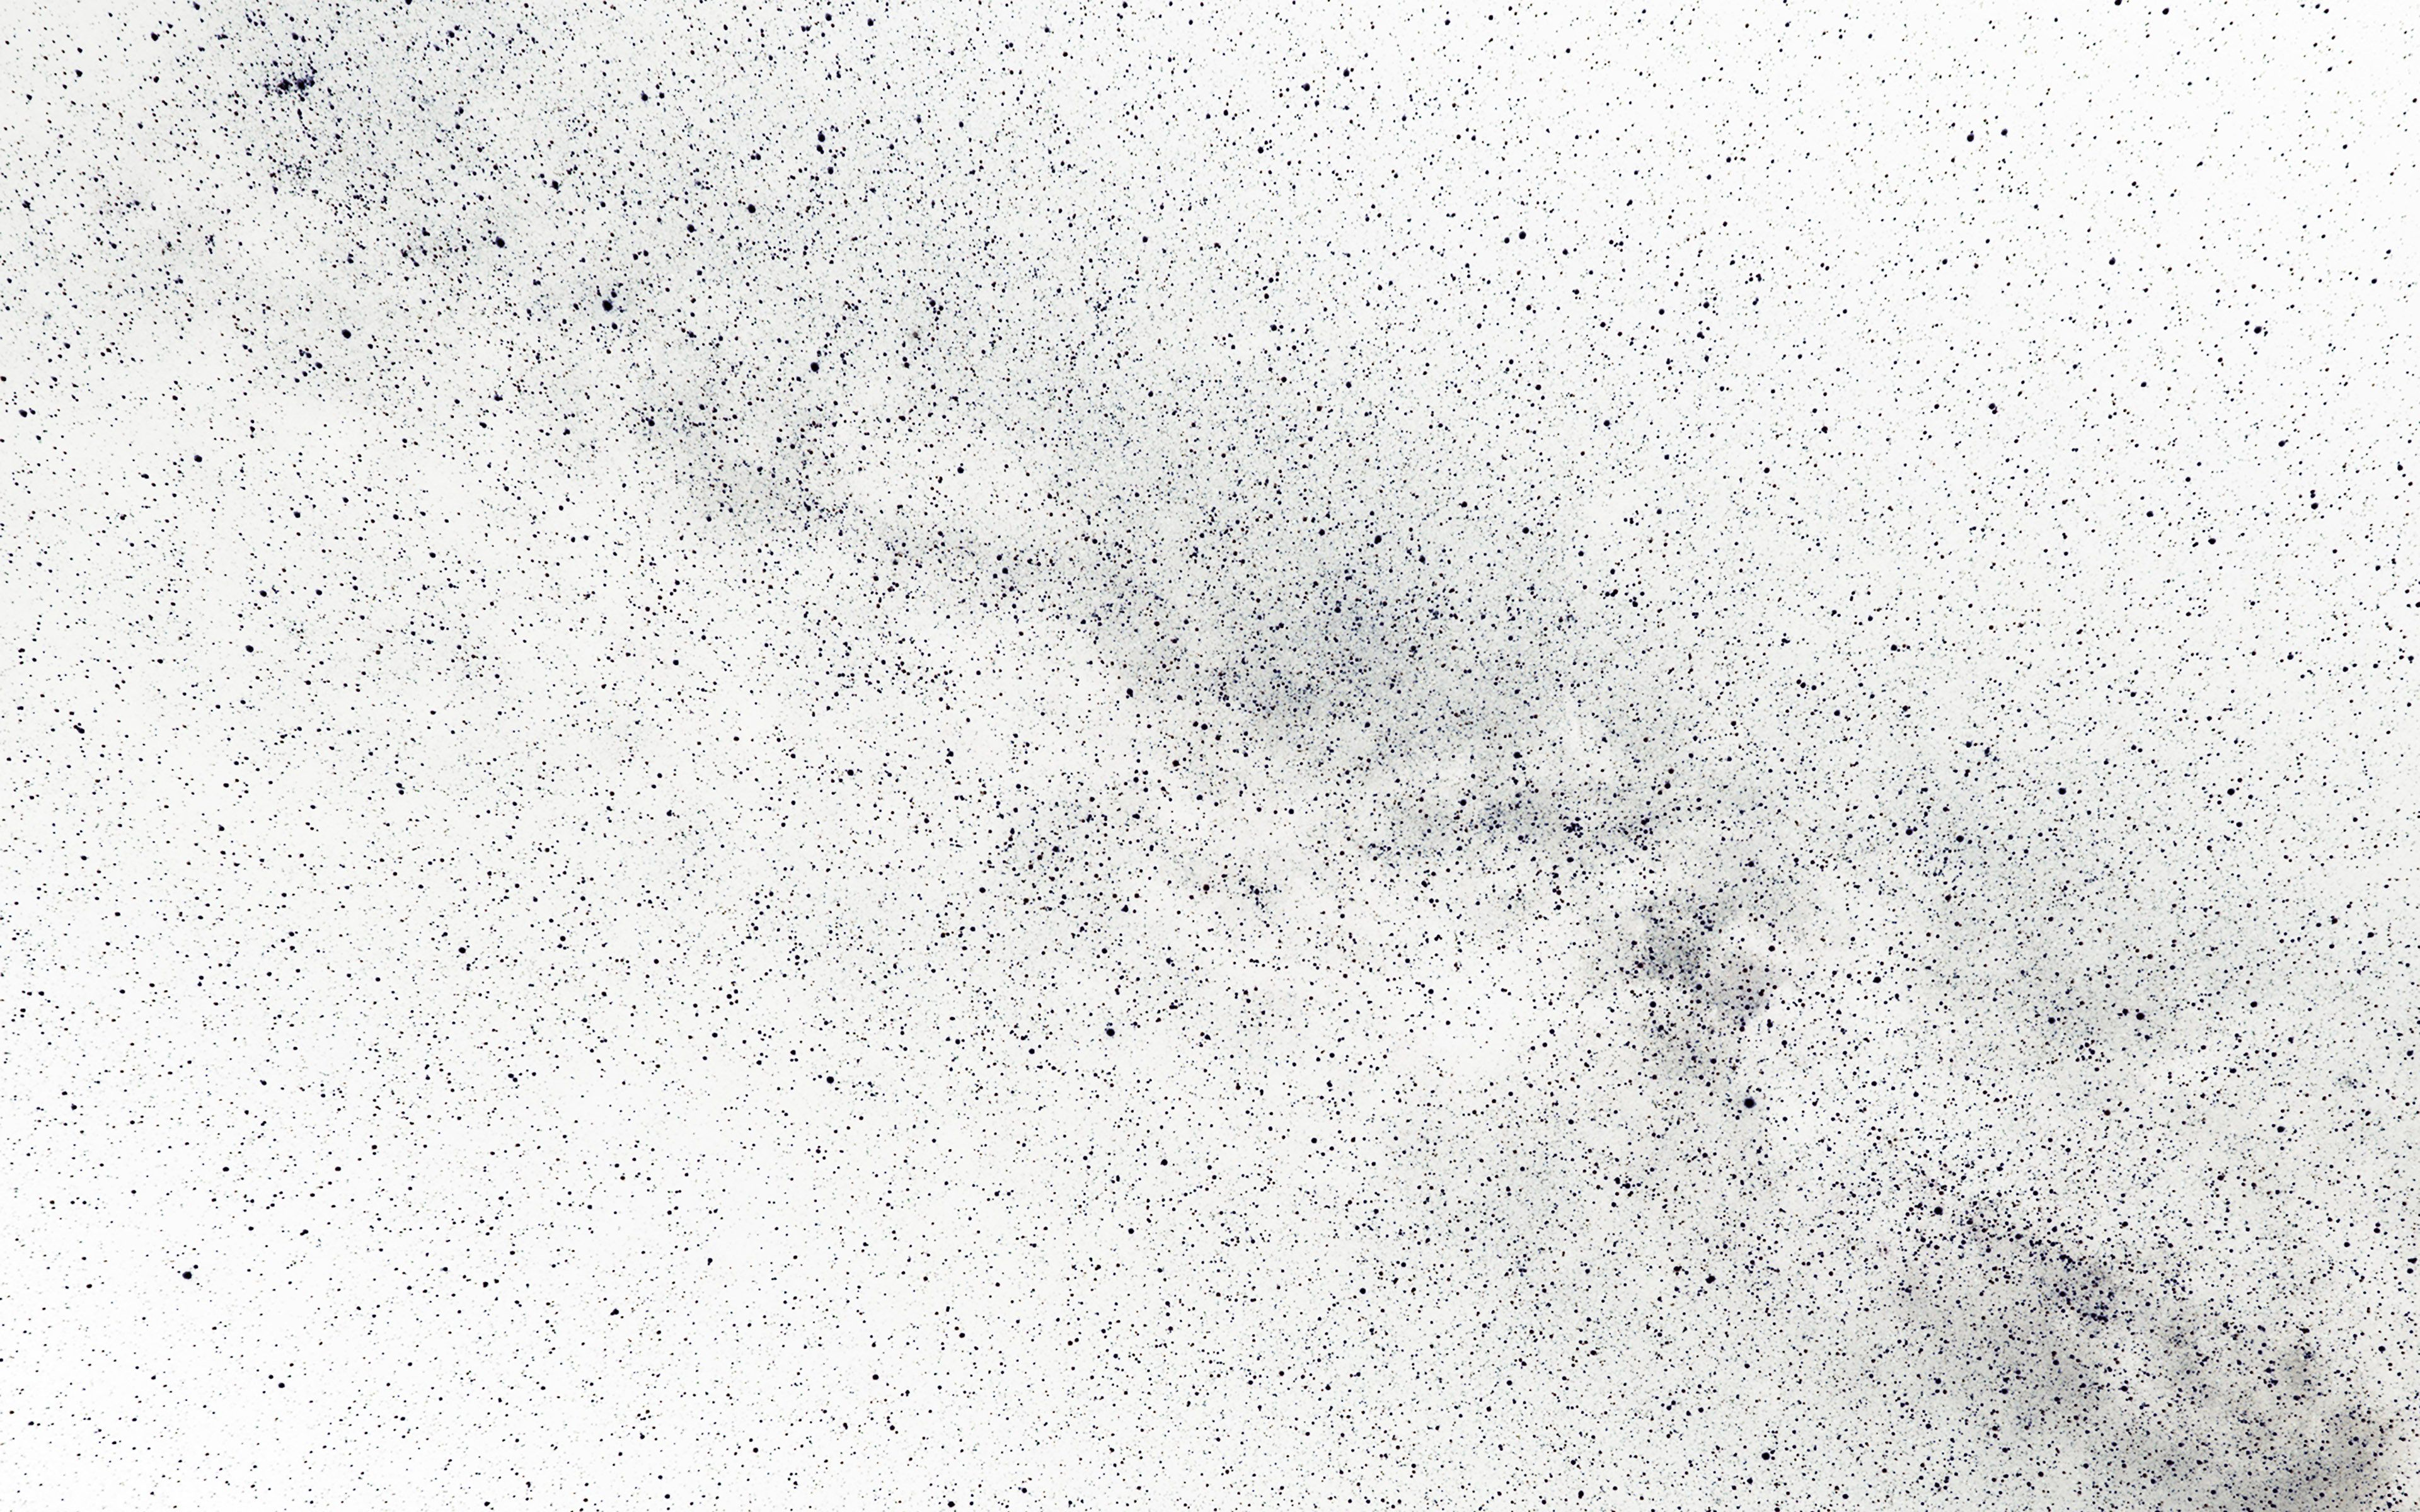 3840x2400 md64-star-white-space-galaxy - Papers.co